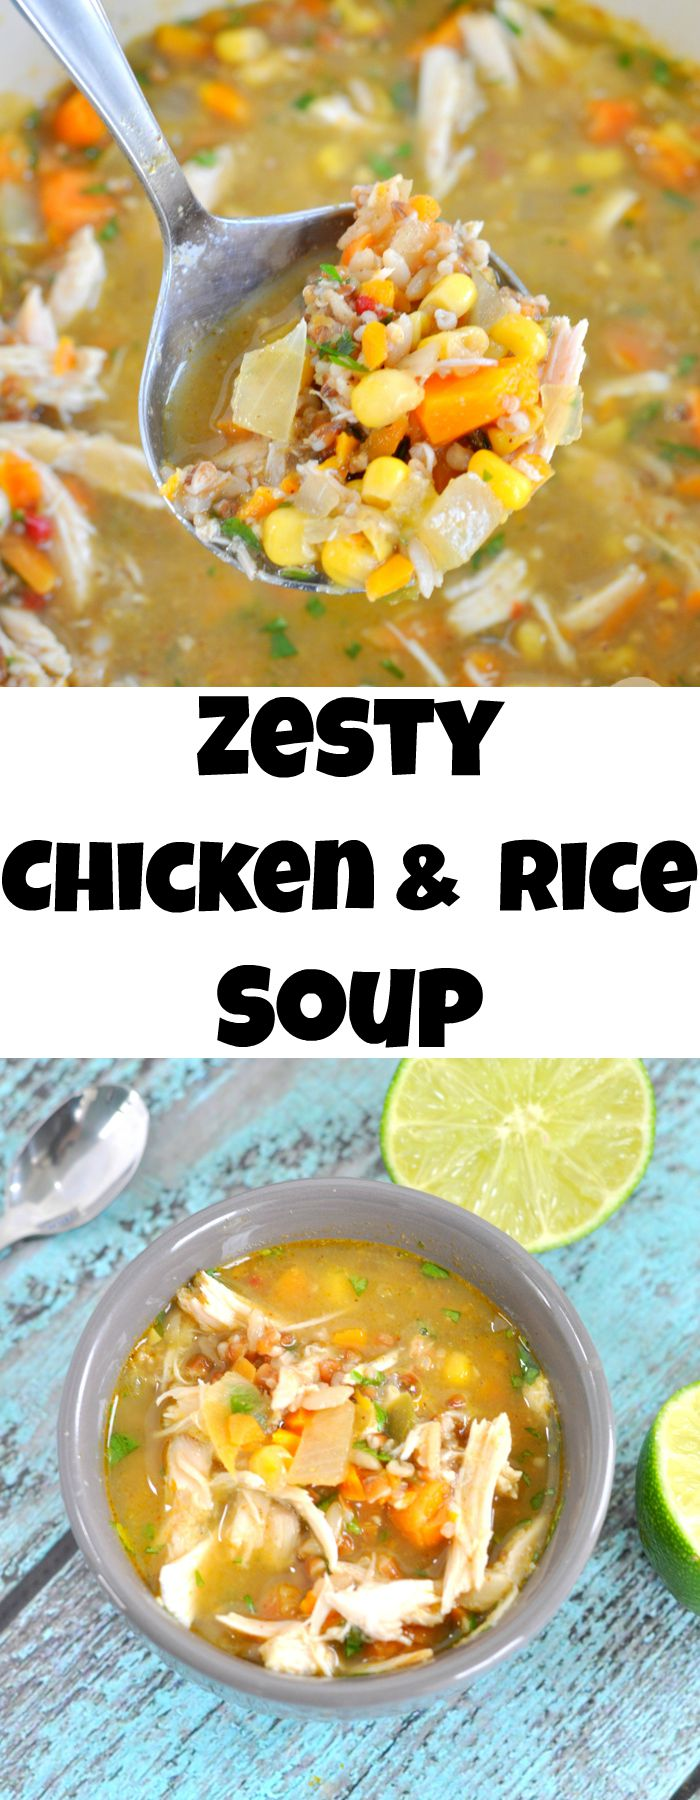 Zesty Chicken and Rice Soup is the perfect quick and easy fall lunch or dinner.